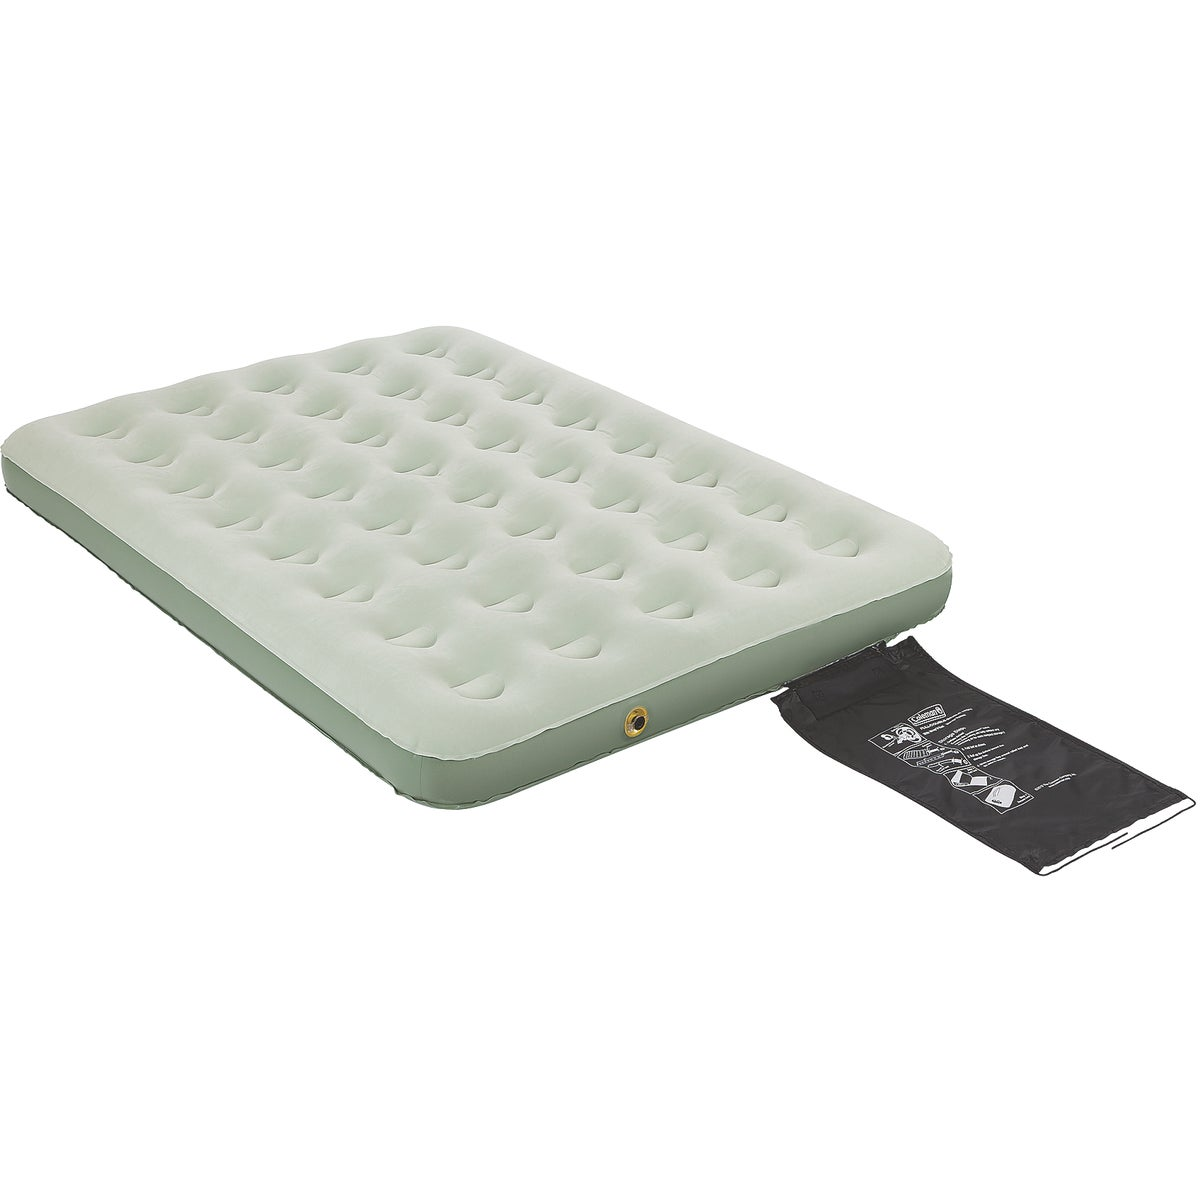 54X74 FULL AIR MATTRESS - 80510 by Academy Broadway Cor